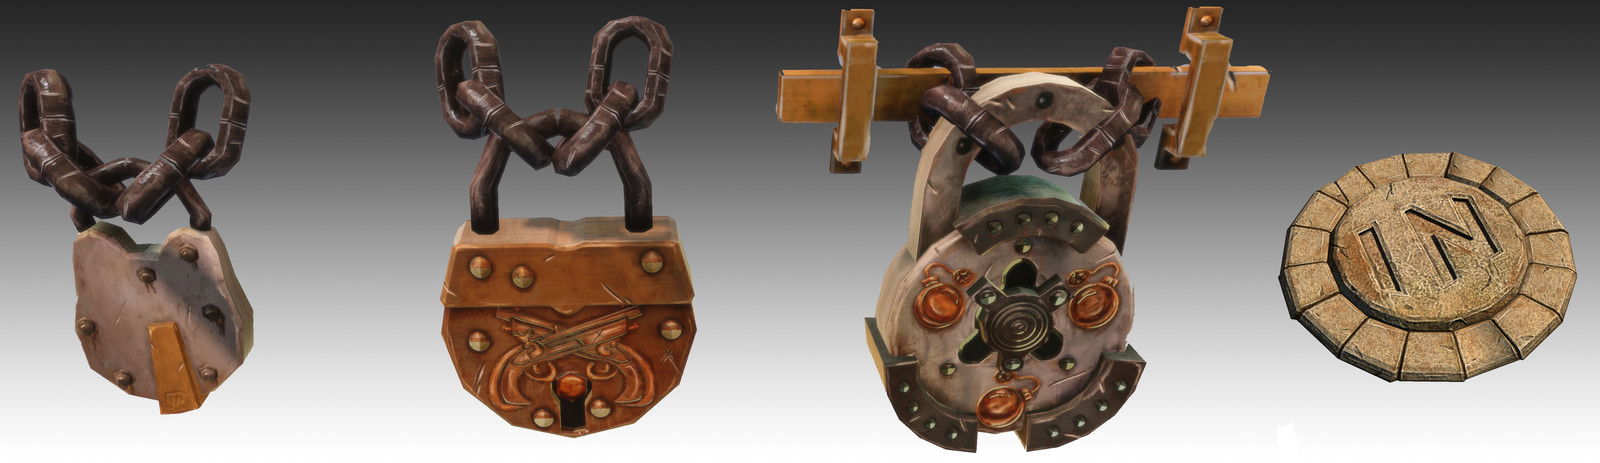 Props for Disney Infinity: Pirates of the Caribbean Play-Set